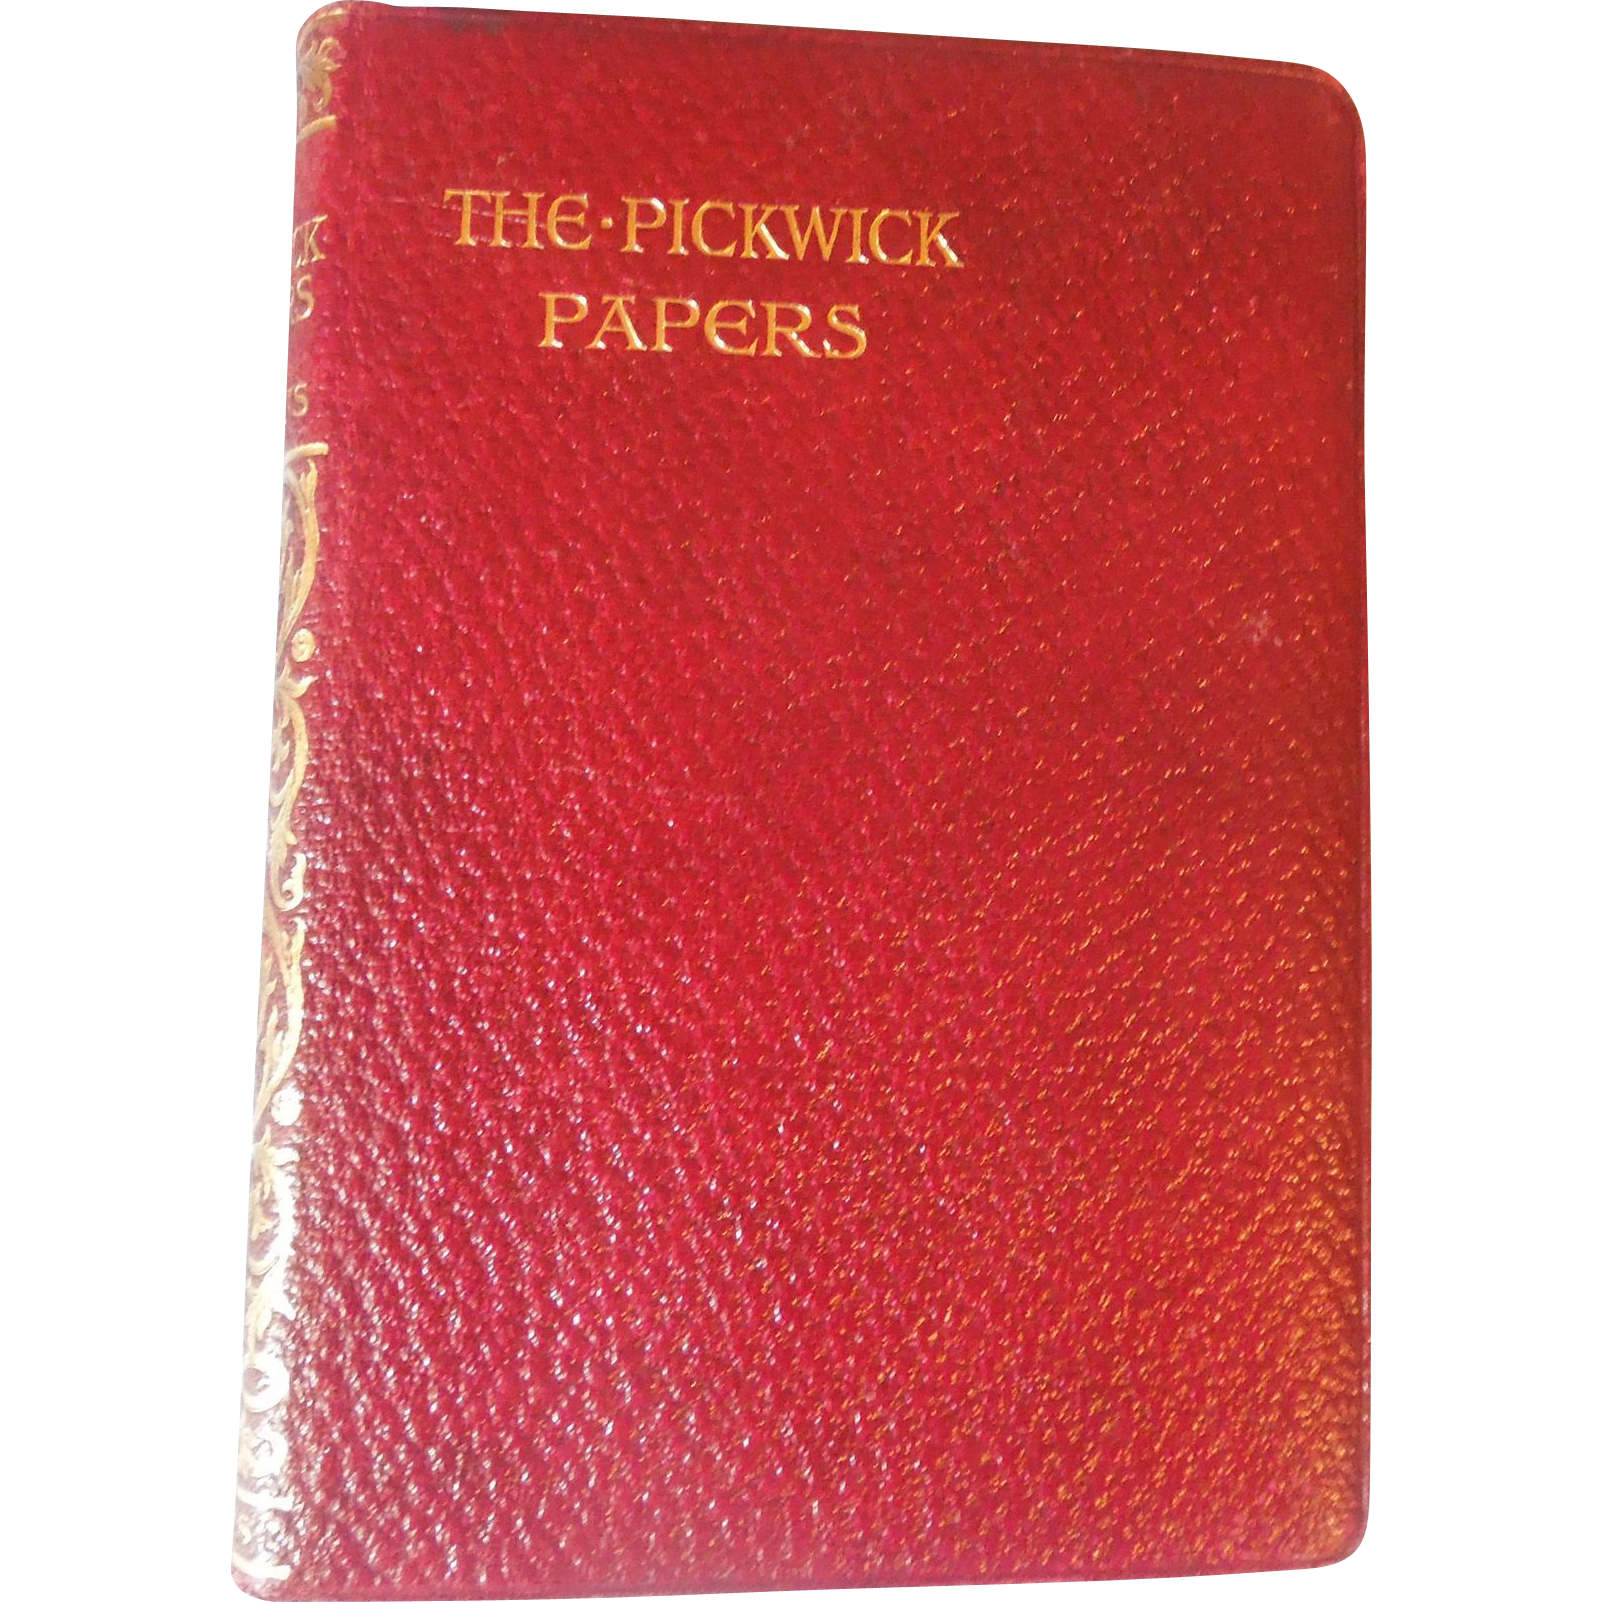 The Pickwick Papers, Charles Dickens, Full Leather, 1915